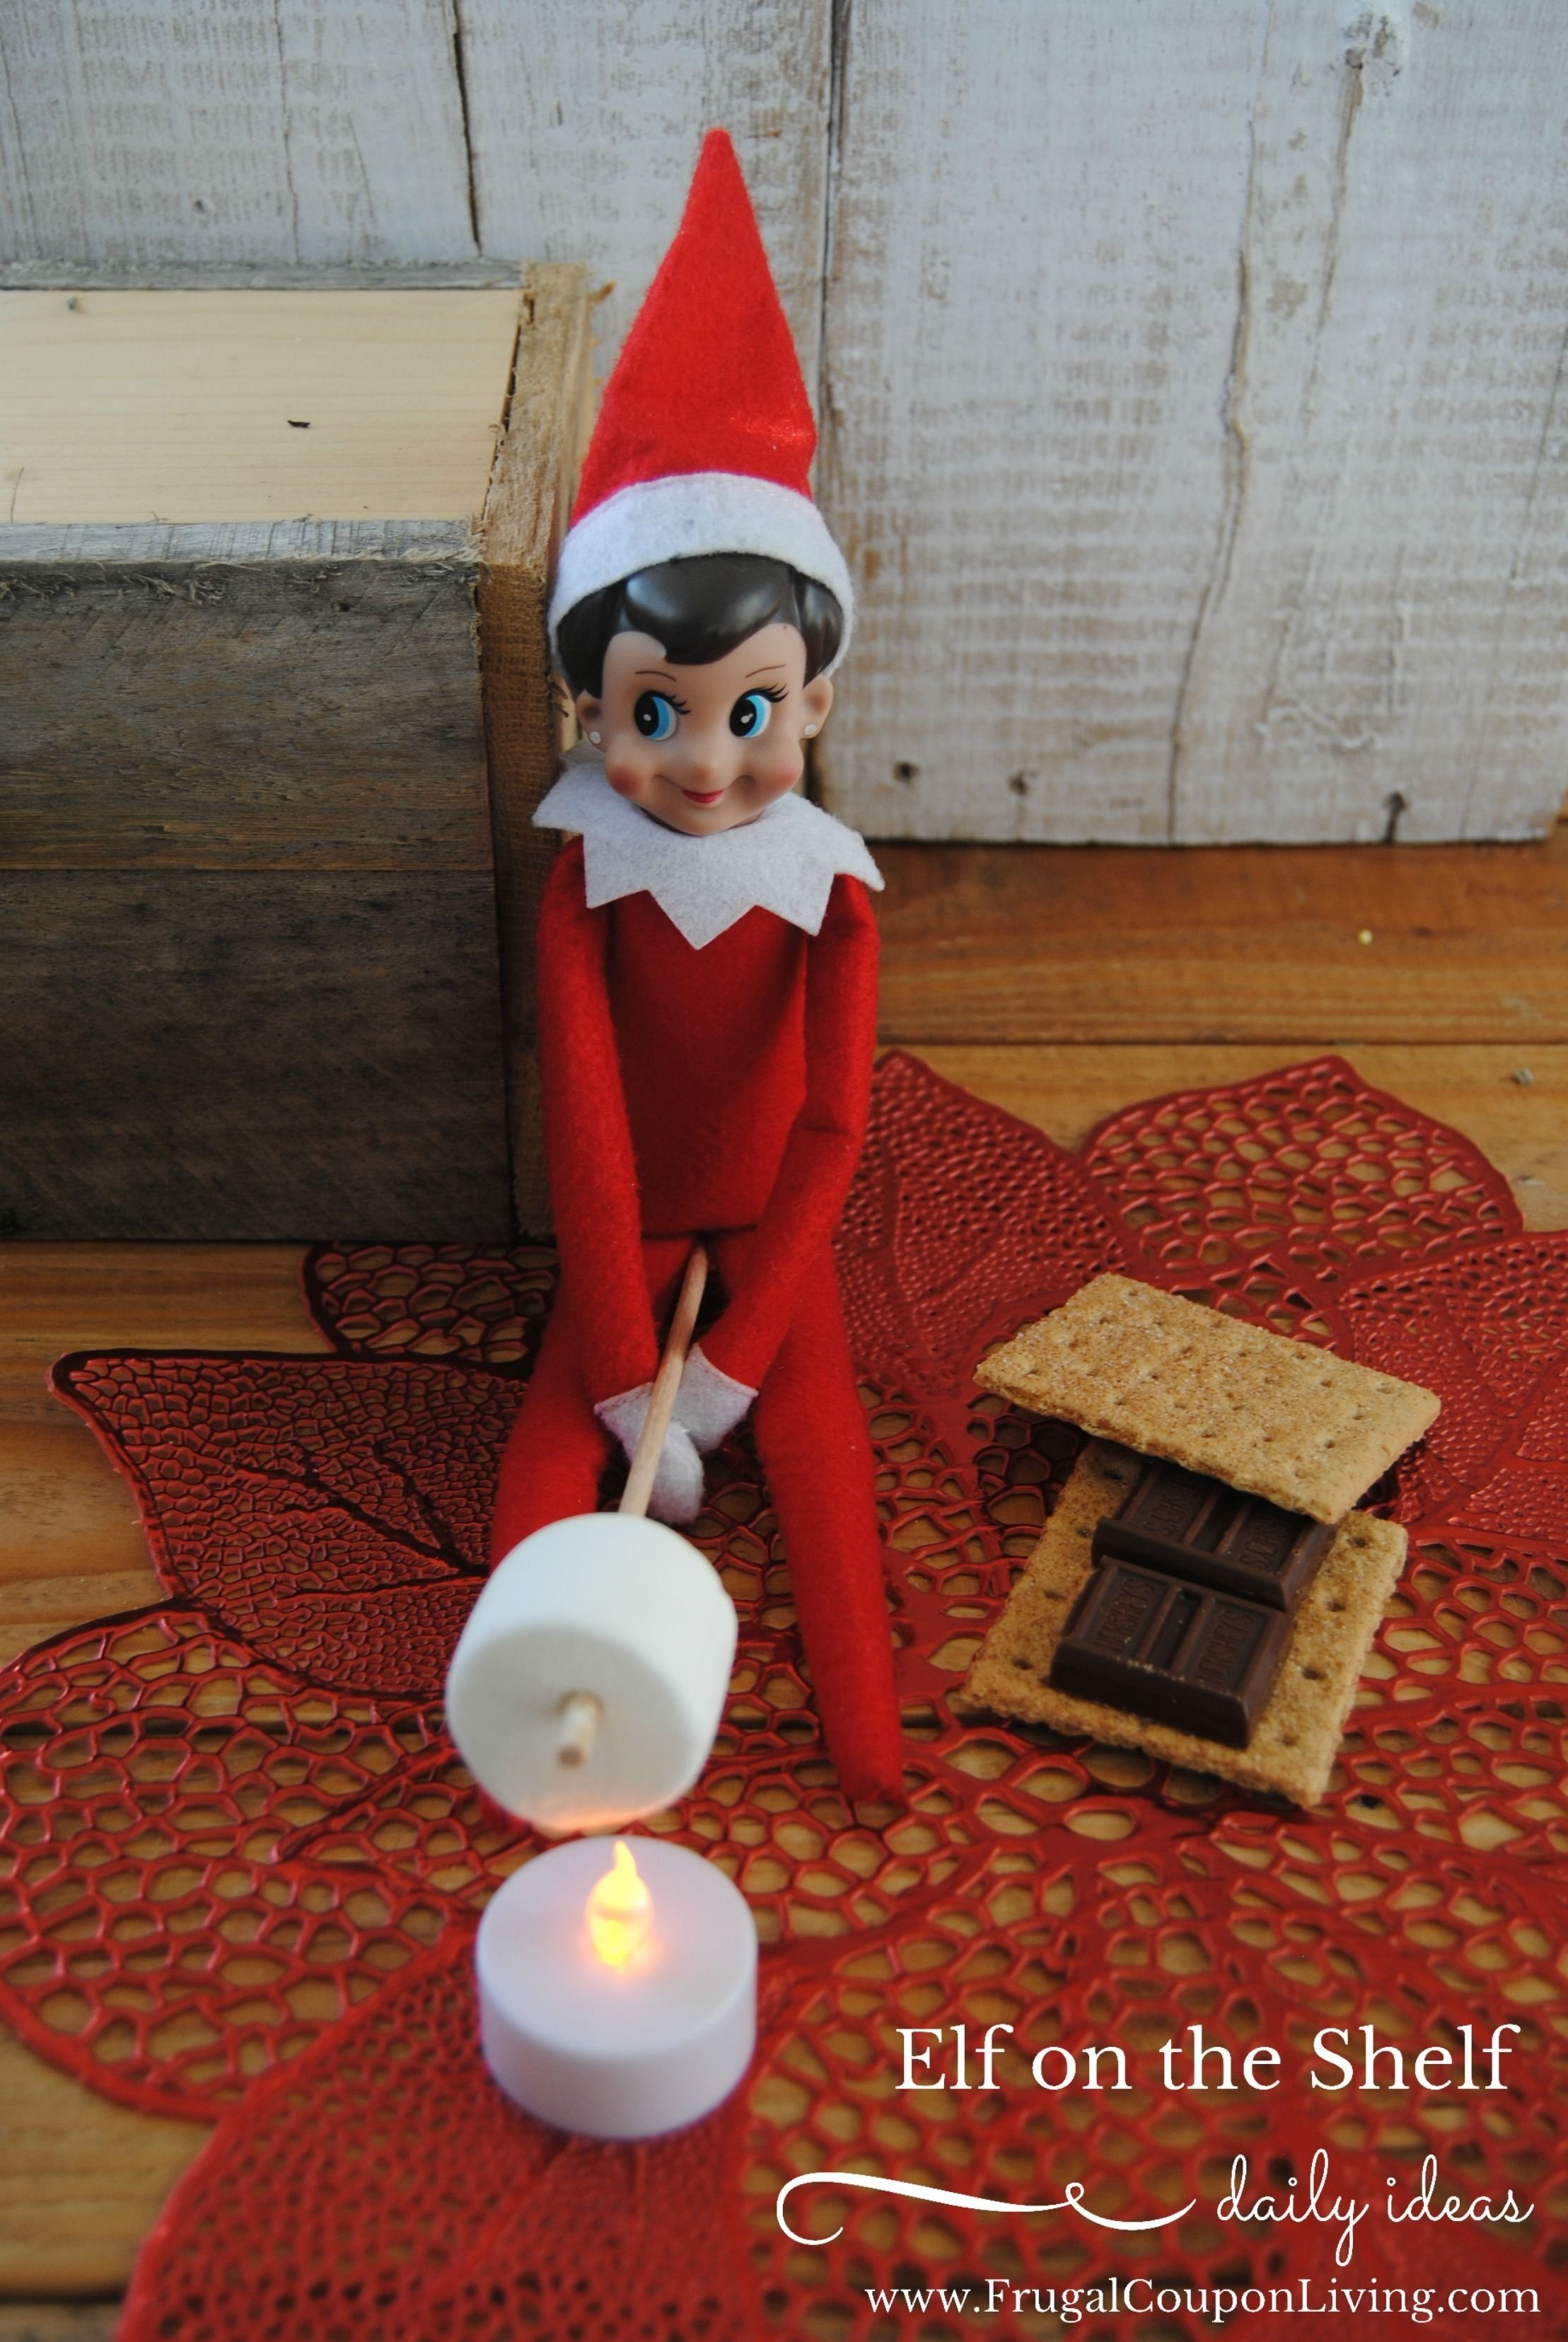 10 Nice Naughty Elf On The Shelf Ideas elf on the shelf ideas shelf ideas flameless candles and elves 4 2021